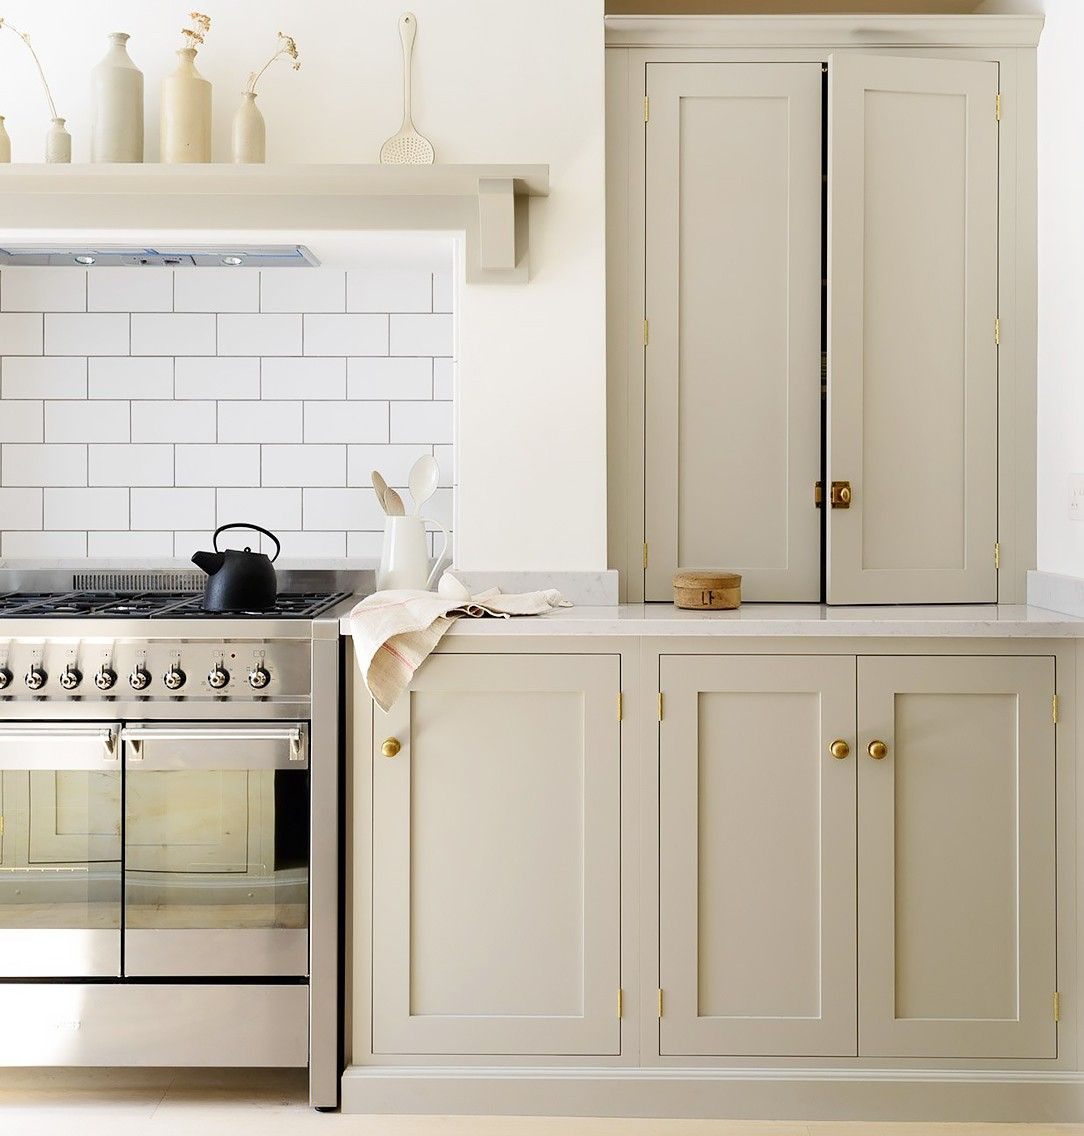 What Is the Next Big Kitchen Cabinet Color Trend? | Wohnen